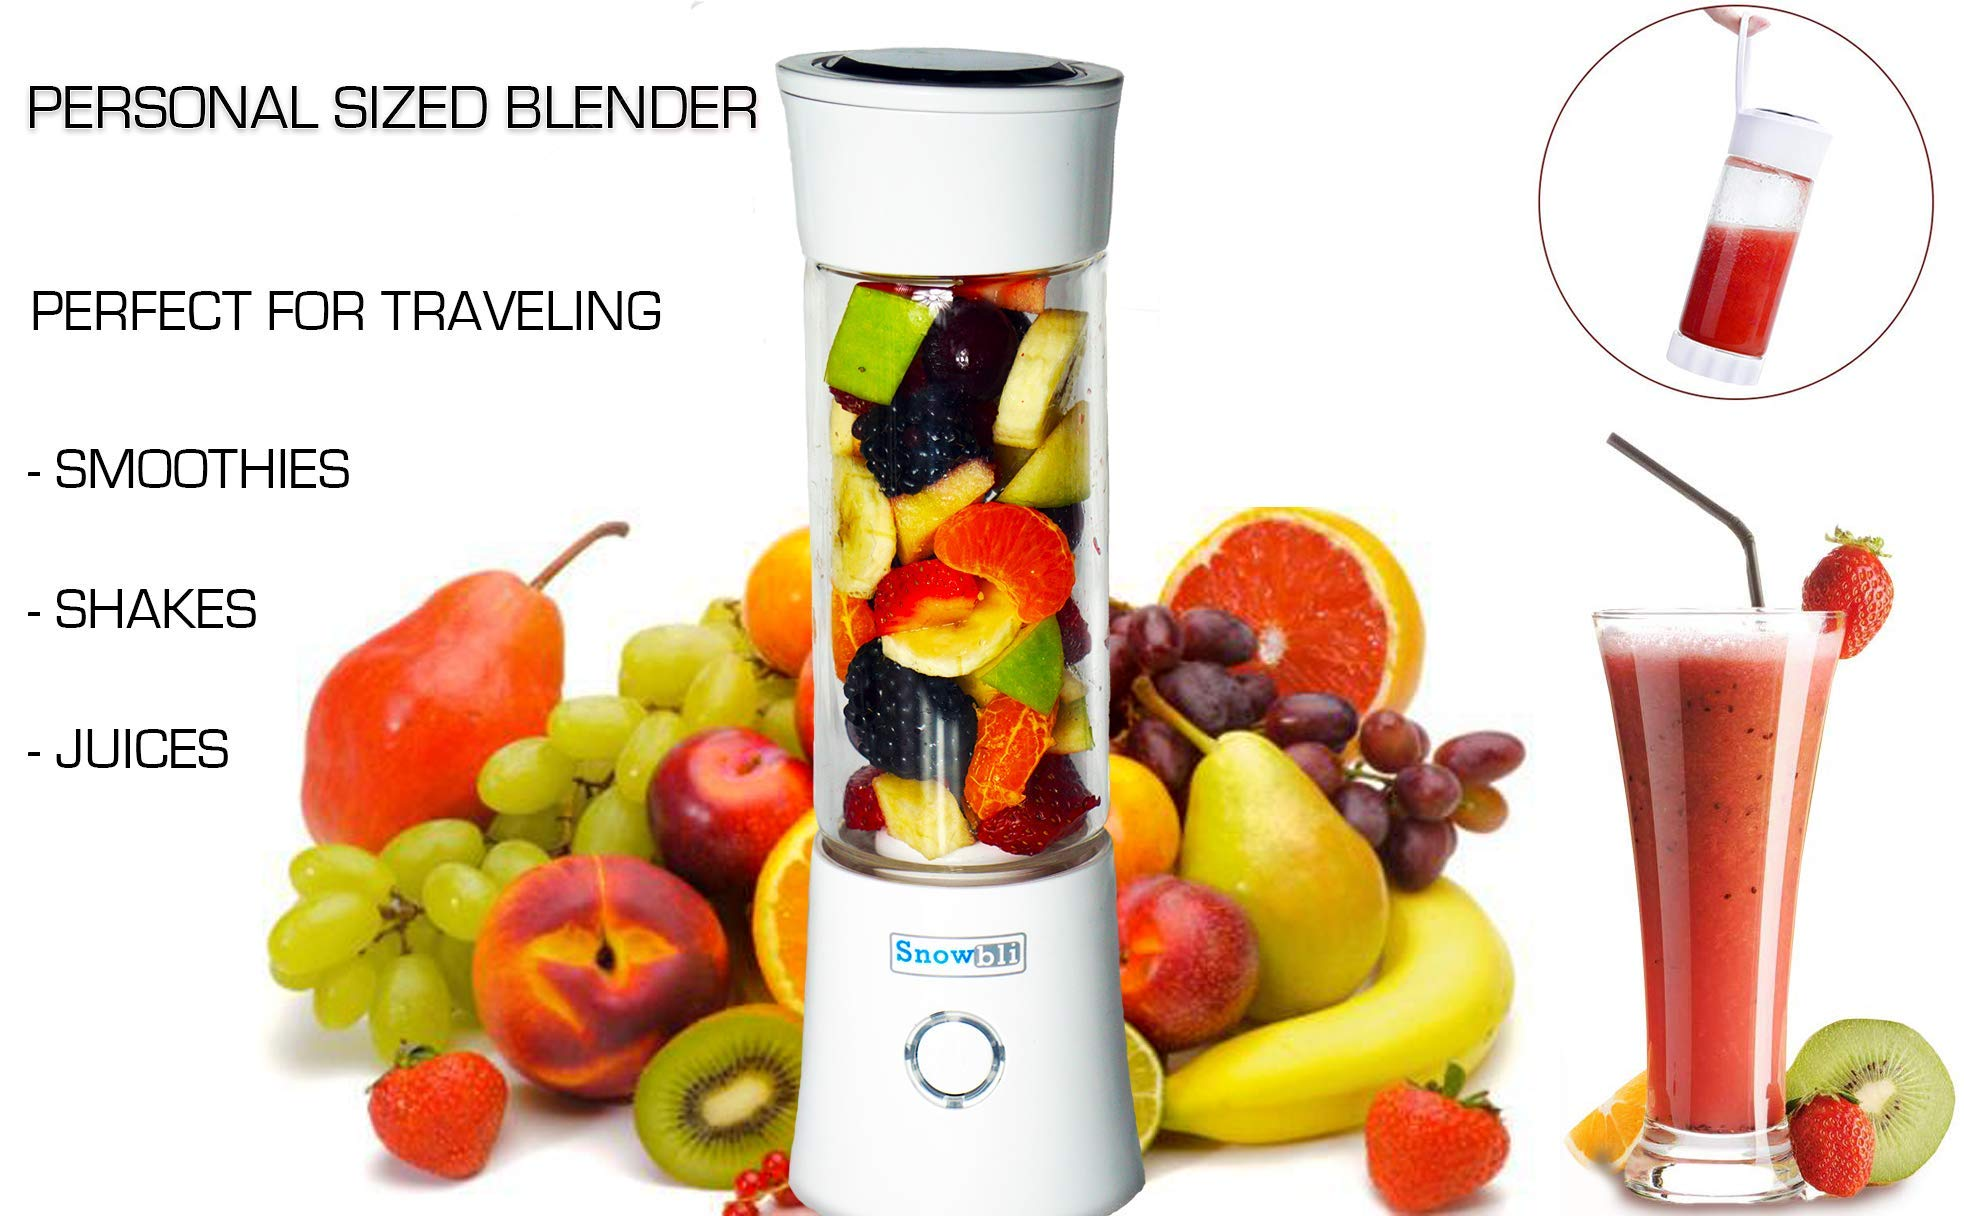 NEW Portable Smoothie Blender by Snowbli - USB Rechargeable Blender for Shakes and Smoothies - 480ml/16oz Smoothie Maker - Premium Quality Food Grade Materials - Borosilicate Glass - 2000mAh Battery/Veteran owned business by Snowbli